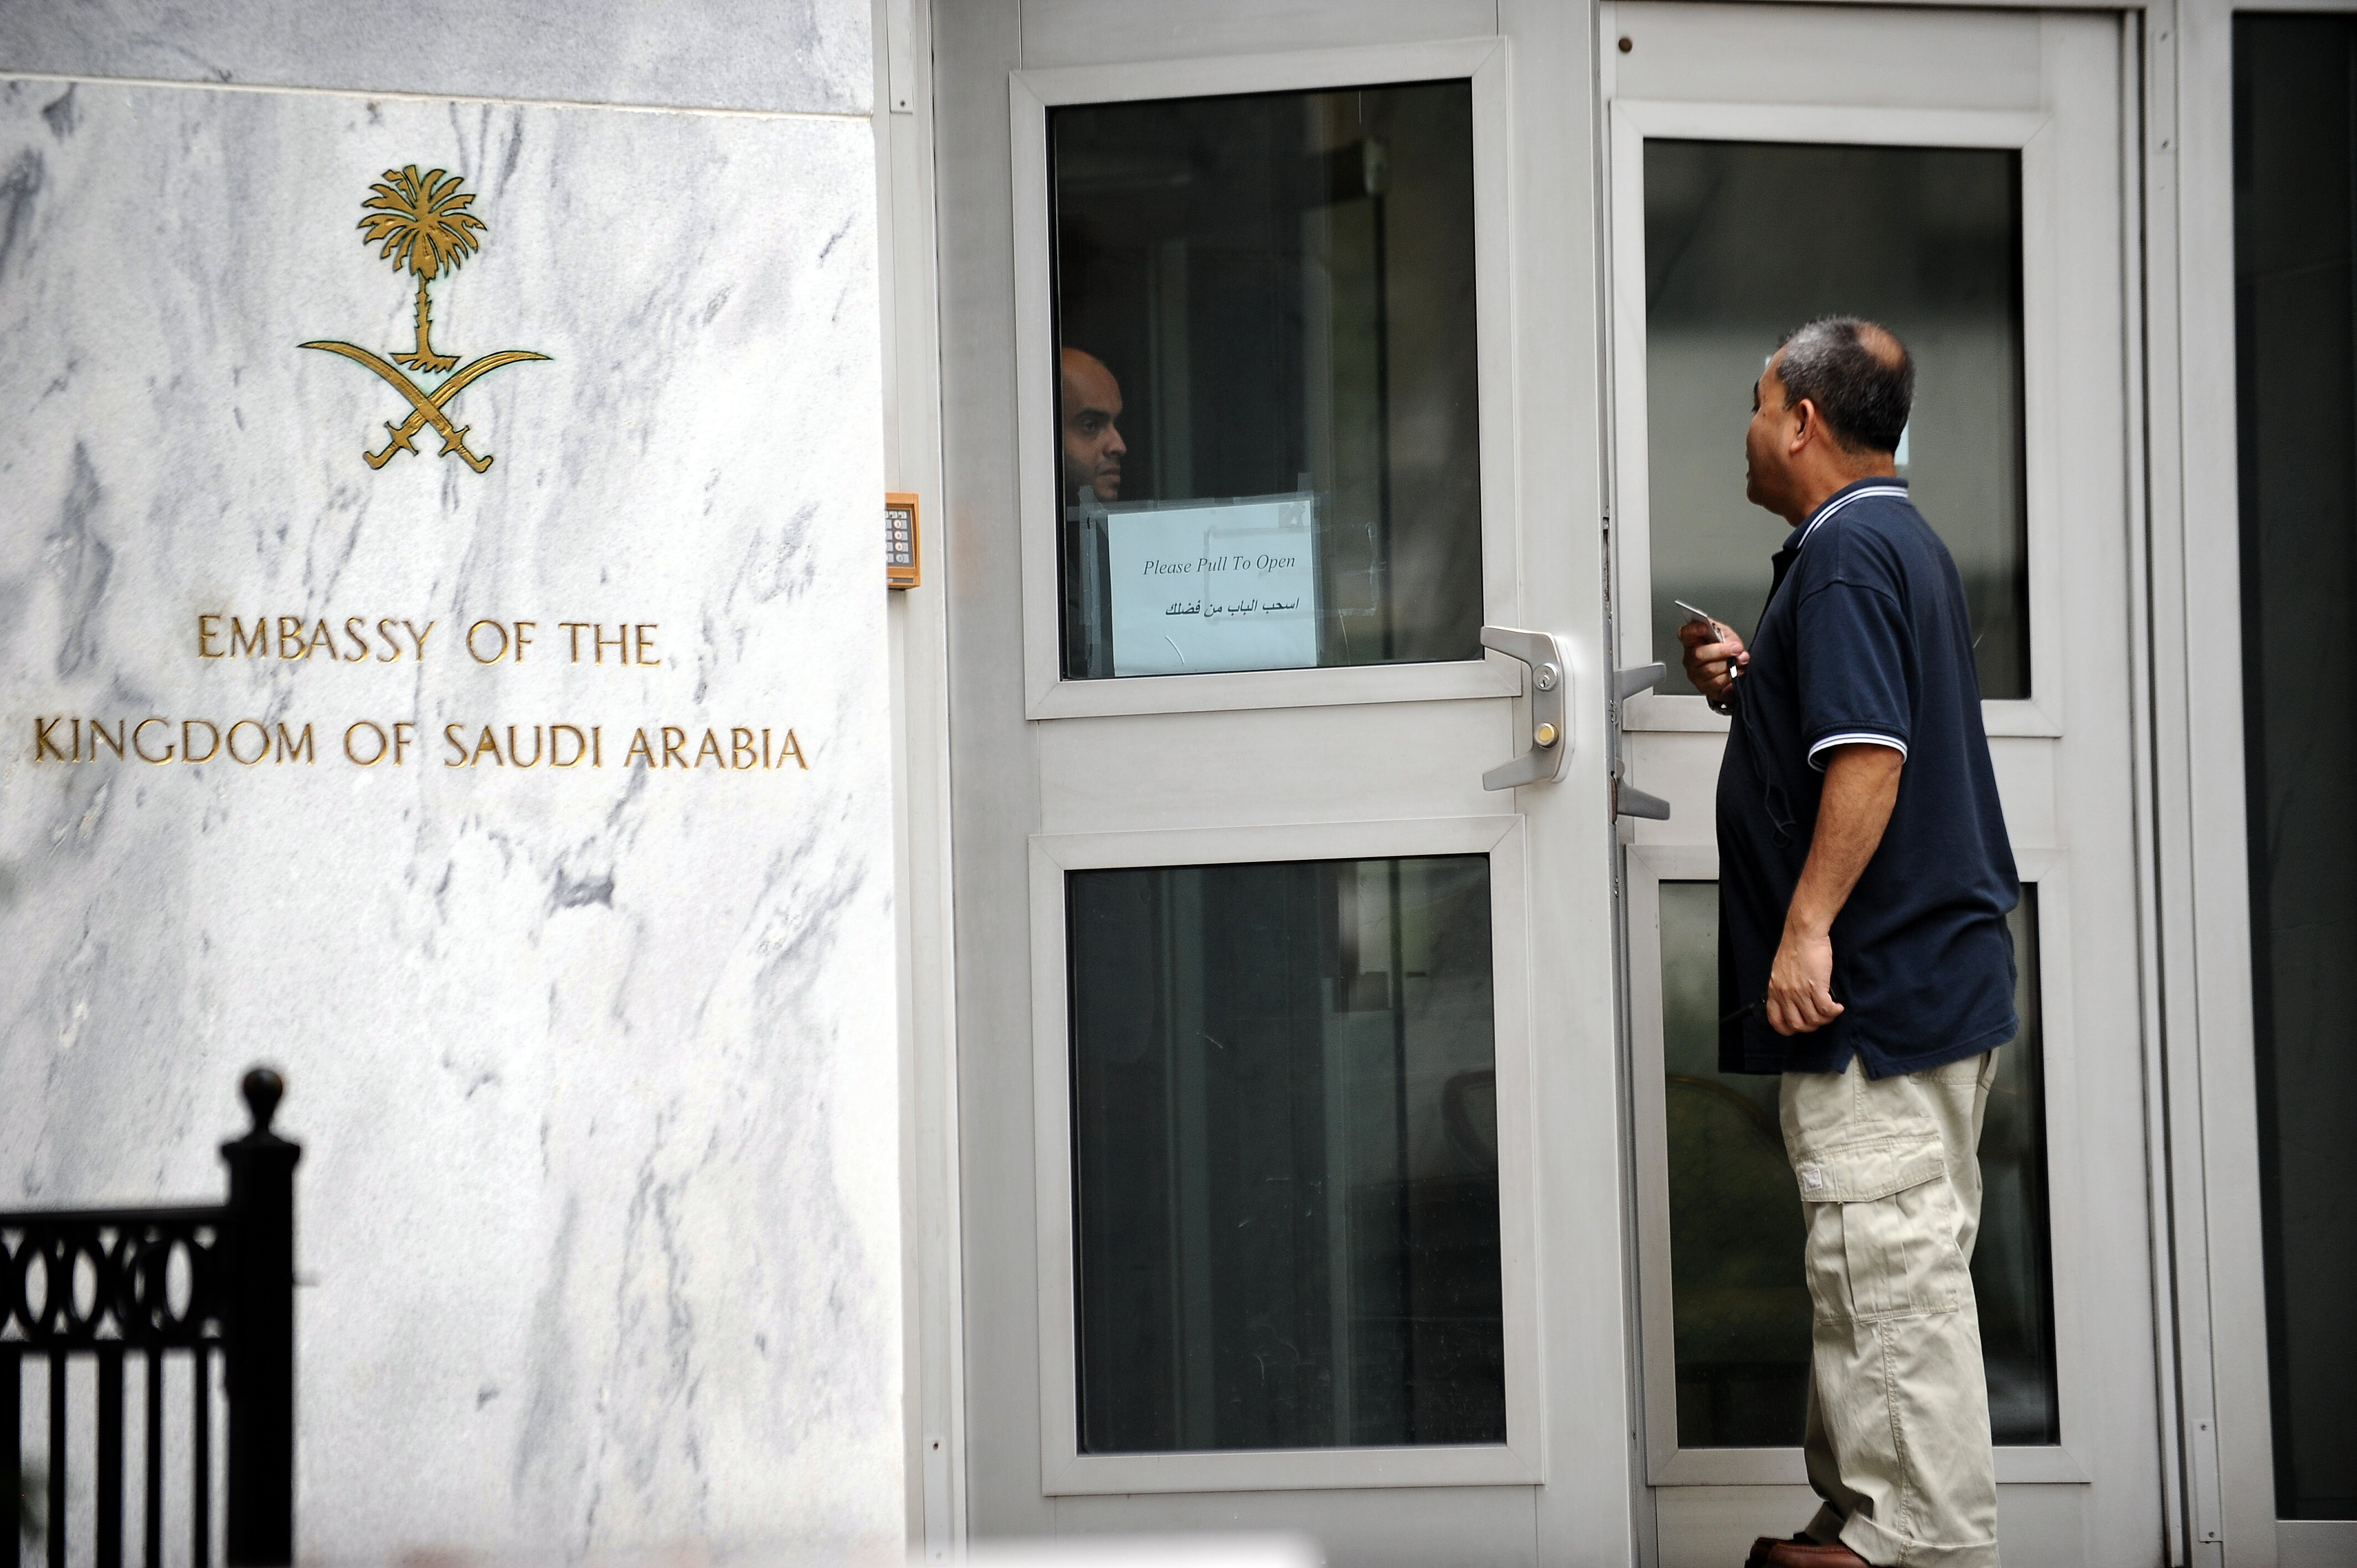 Saudi embassy says it welcomes the release of classified documents related to September 11 attacks